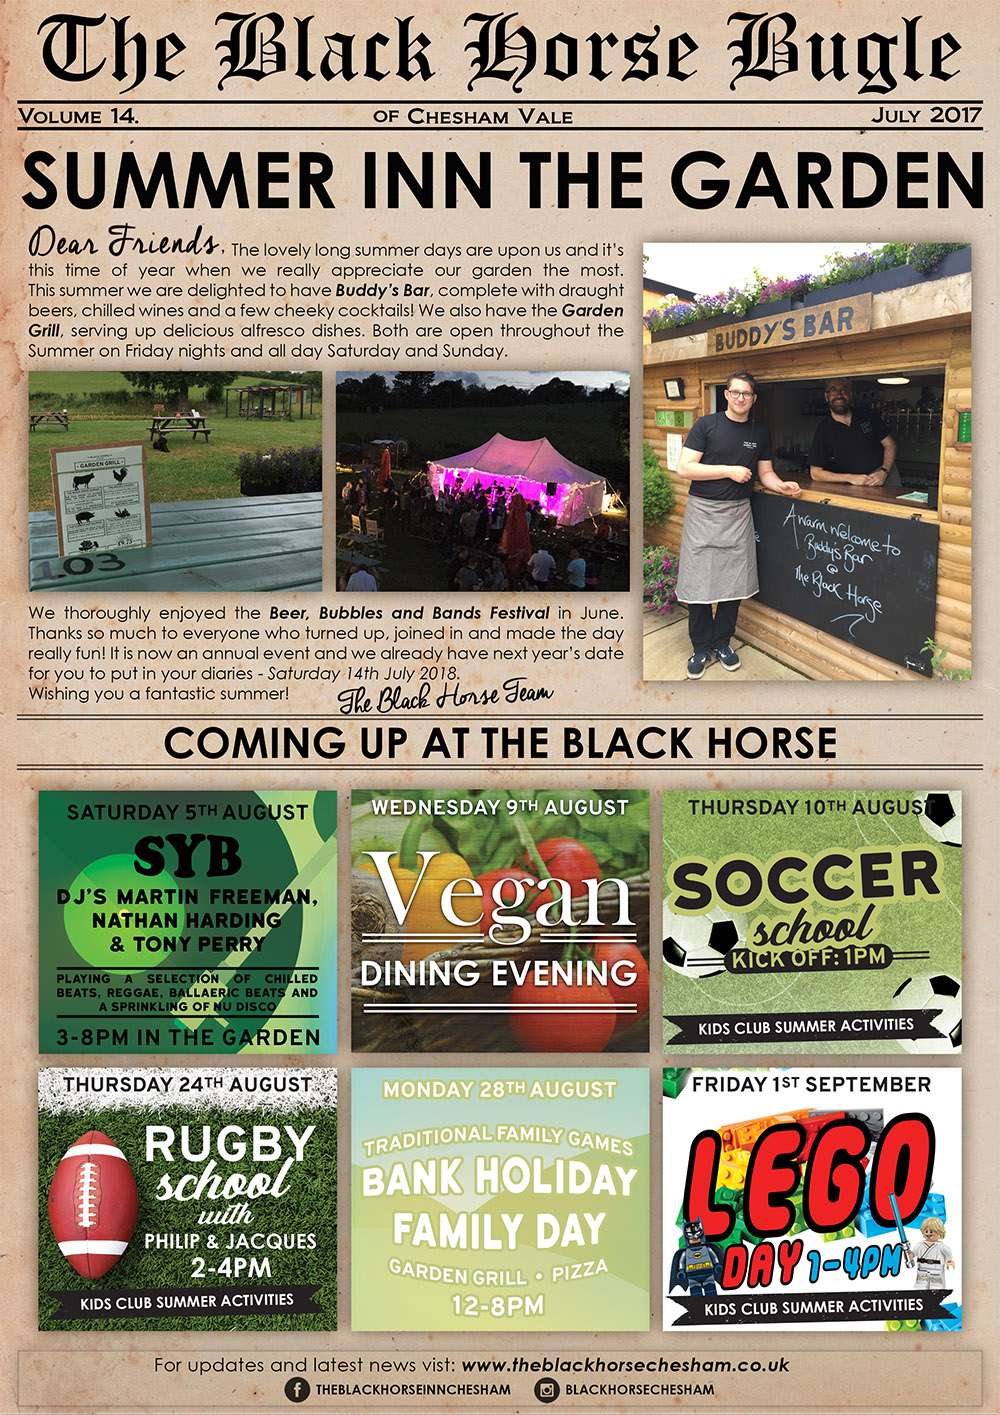 The Black Horse Bugle - Volume 14 - July 2017 - Summer INN The Garden - Dear Friends, The lovely long summer days are upon us and it's this time of year when we really appreciate our garden the most. This summer we are delighted to have Buddy's Bar, complete with draught beers, chilled wines and a few cheeky cocktails! We also have the Garden Grill, serving up delicious alfresco dishes. Both are open throughout the Summer on Friday nights and all day Saturday and Sunday. We thoroughly enjoyed the Beer, Bubbles and Bands Festival in June. Thanks so much to everyone who turned up, joined in and made the day really fun! It is now an annual event and we already have next year's date for you to put in your diaries - Saturday 14th July 2018.Wishing you a fantastic summer!The Black Horse Team